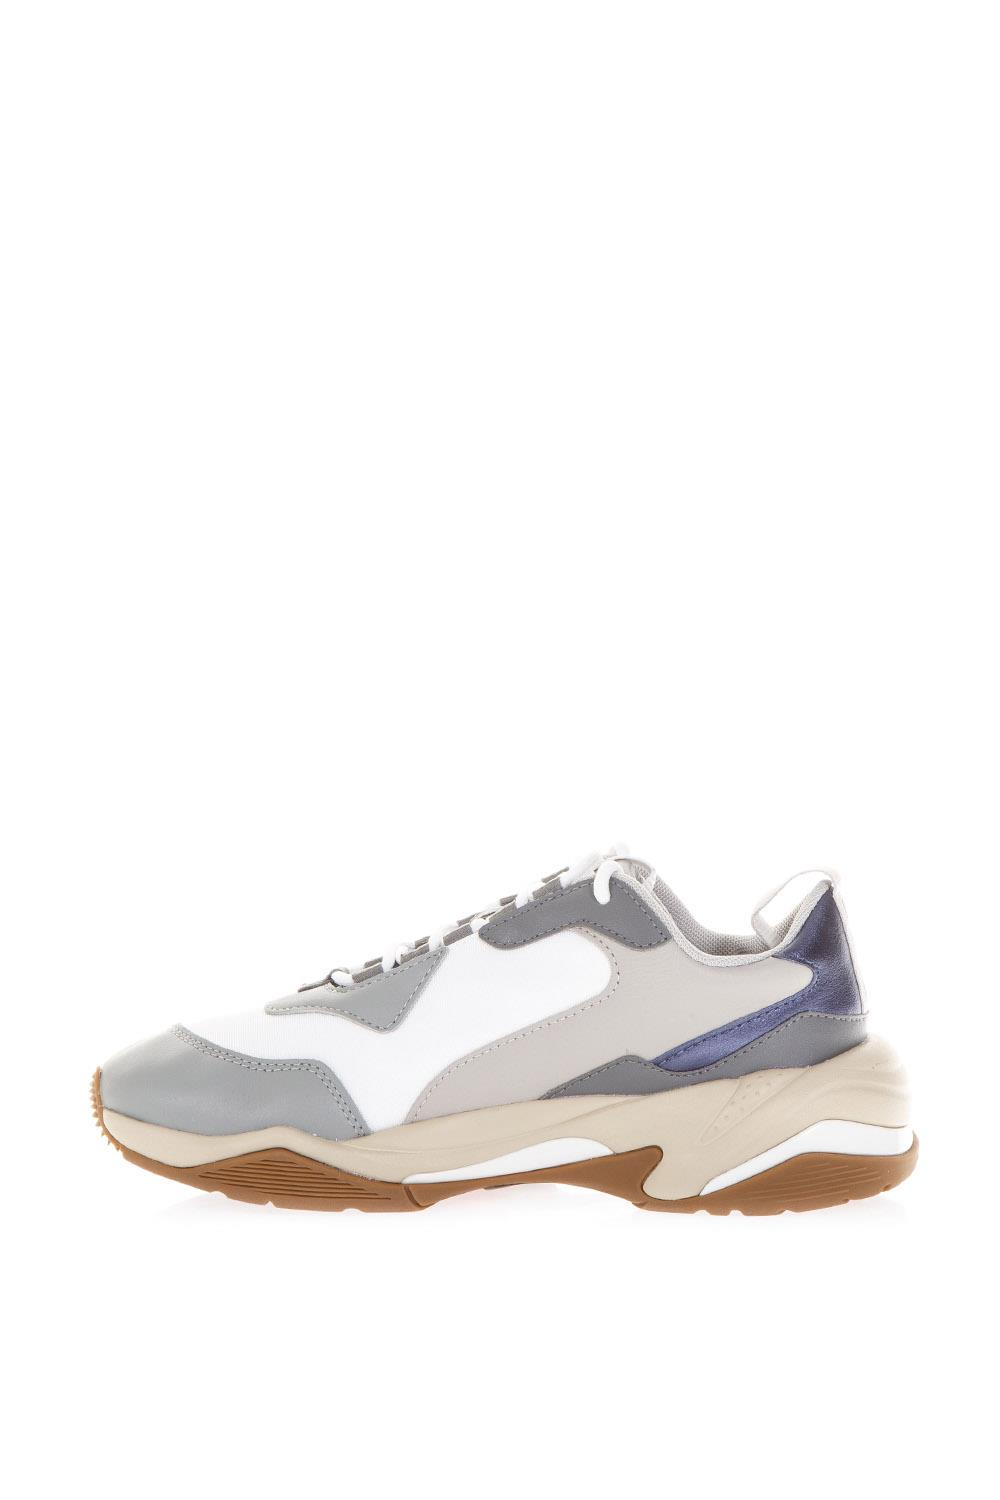 d12b007af94 THUNDER ELECTRIC SNEAKERS FW 2018 - PUMA SELECT ...